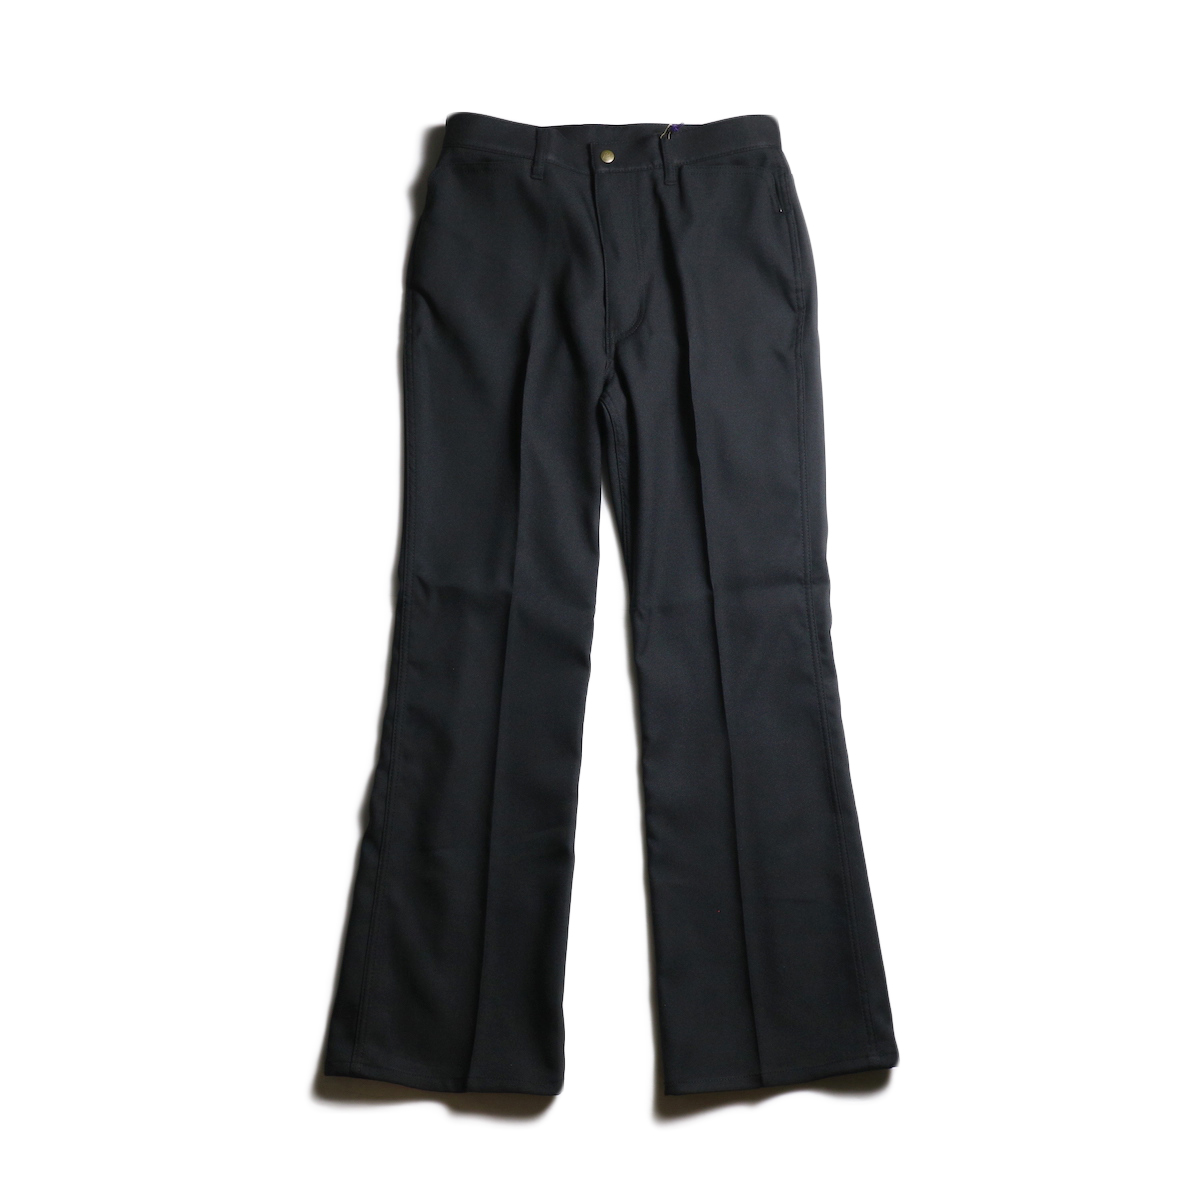 Needles / BOOT-CUT JEAN - POLY TWILL (Black)